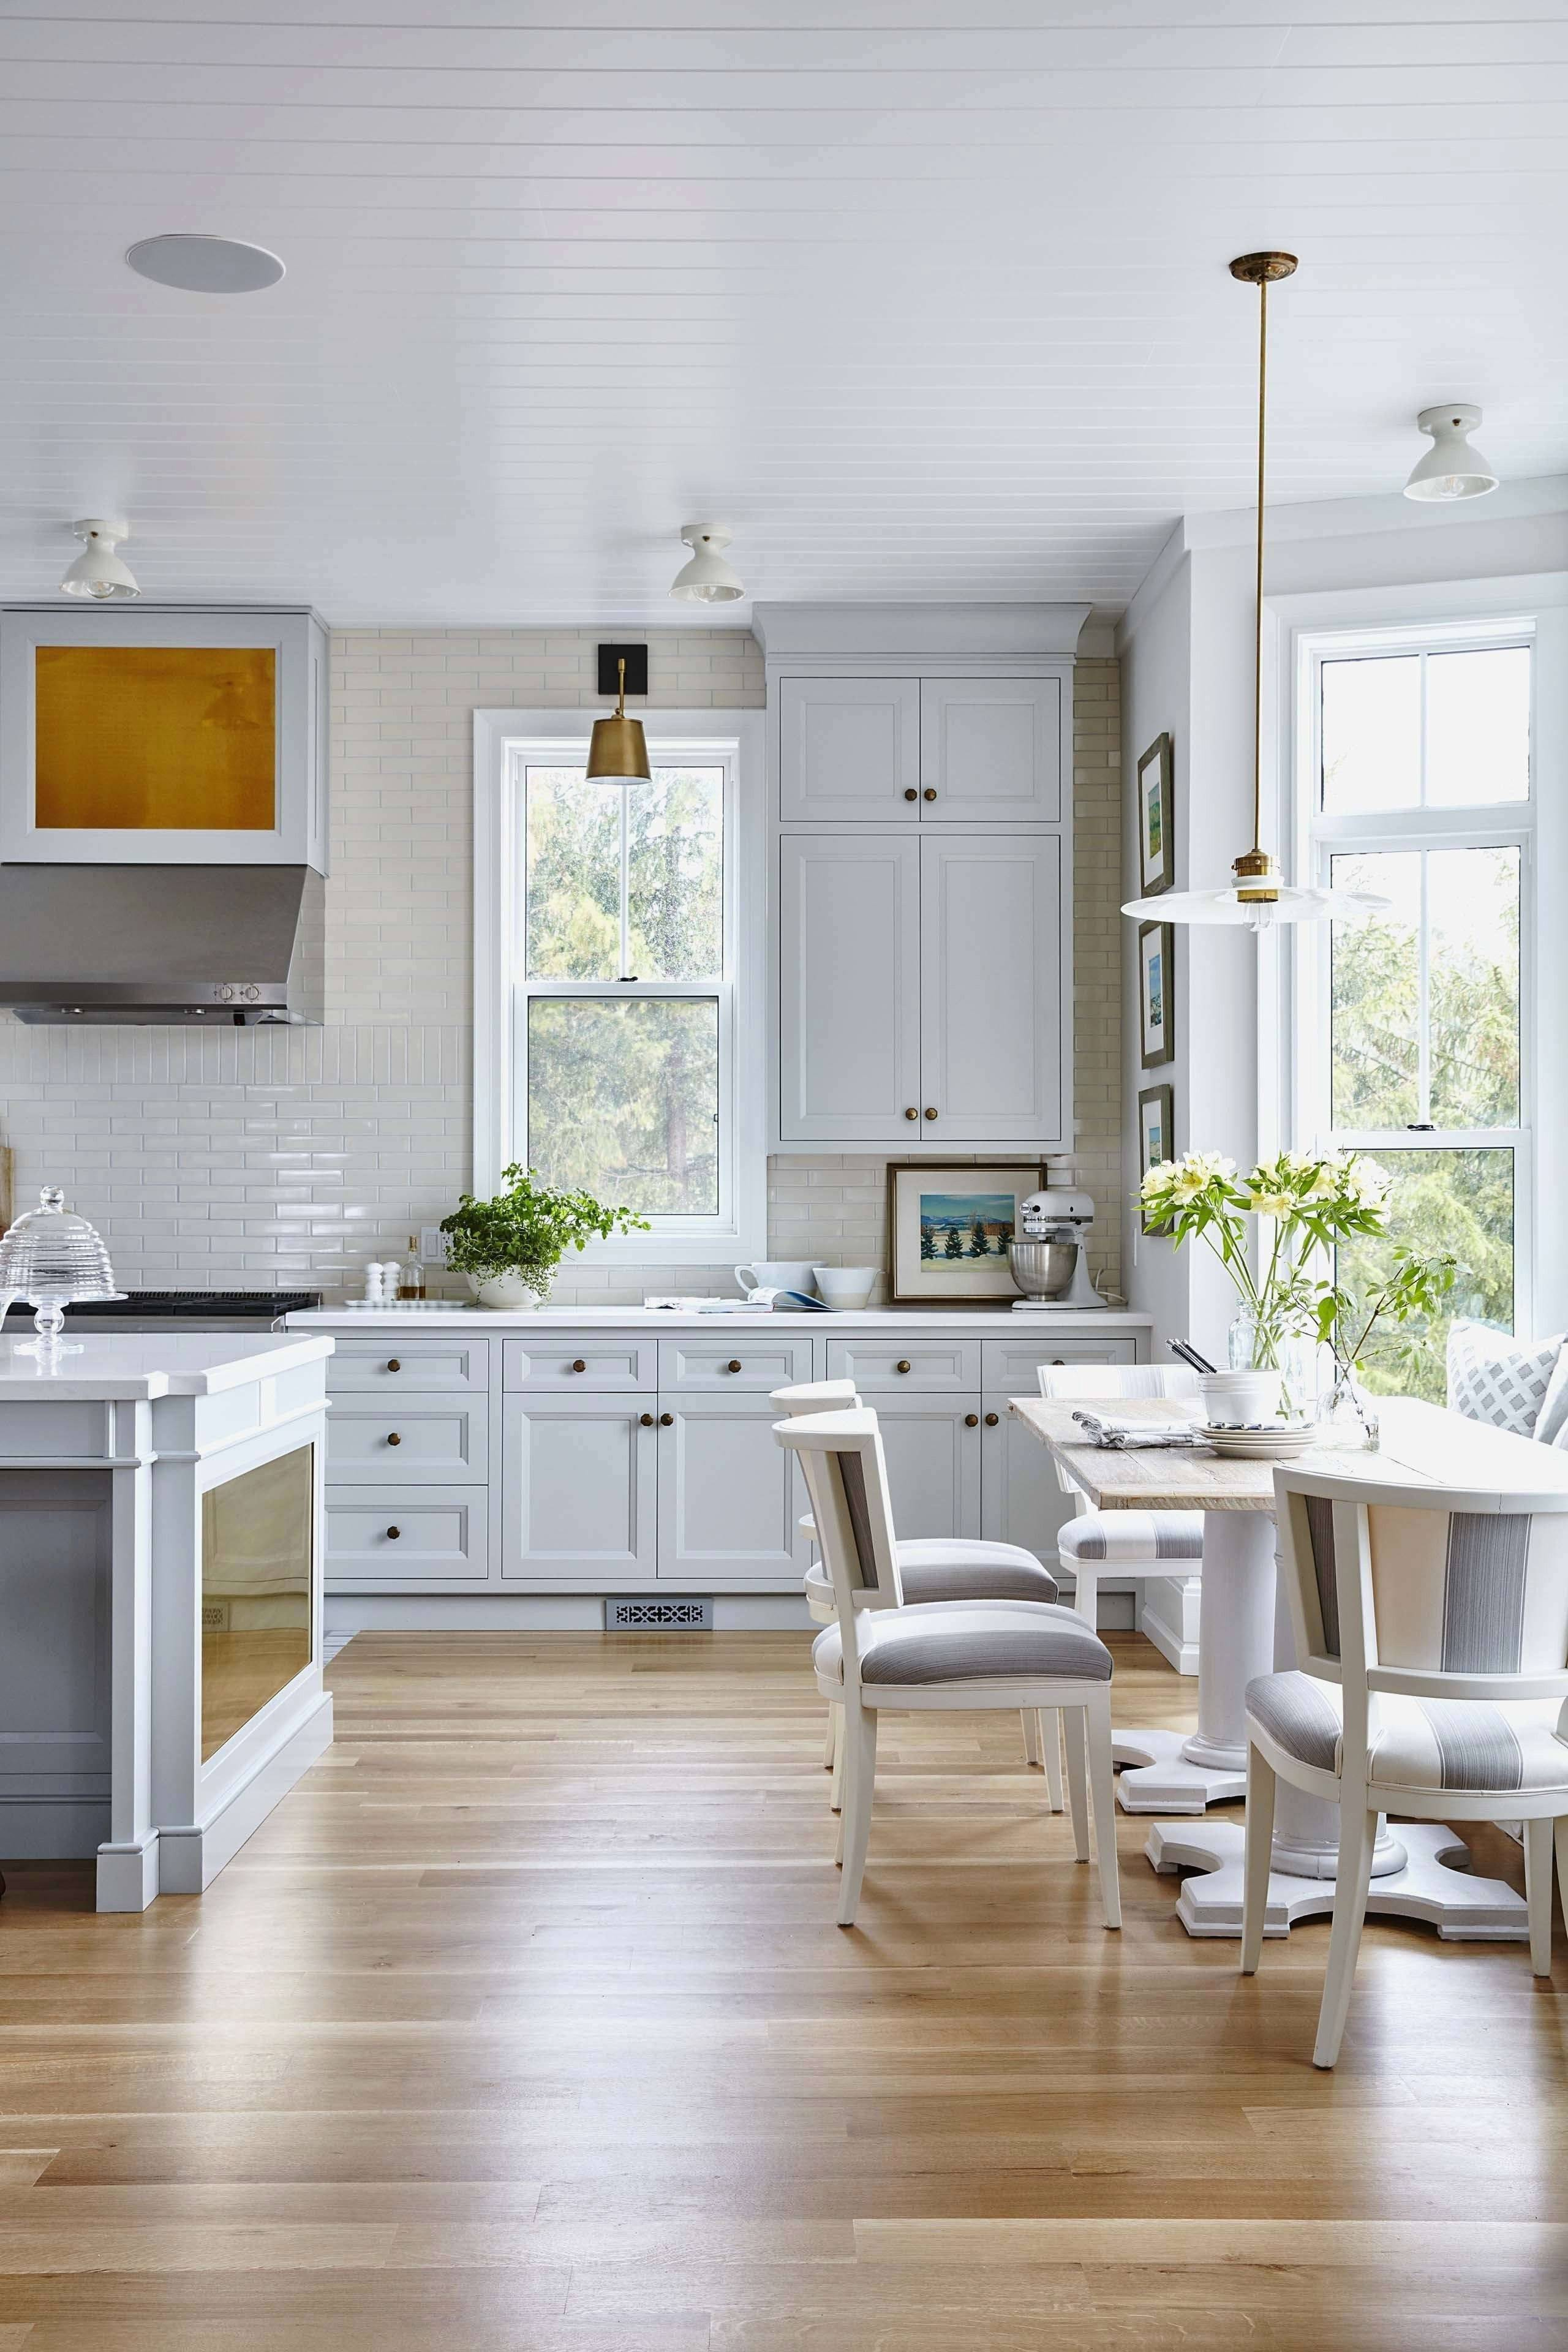 modern white bed design interesting black and white kitchen decor kitchen joys kitchen joys kitchen 0d gallery